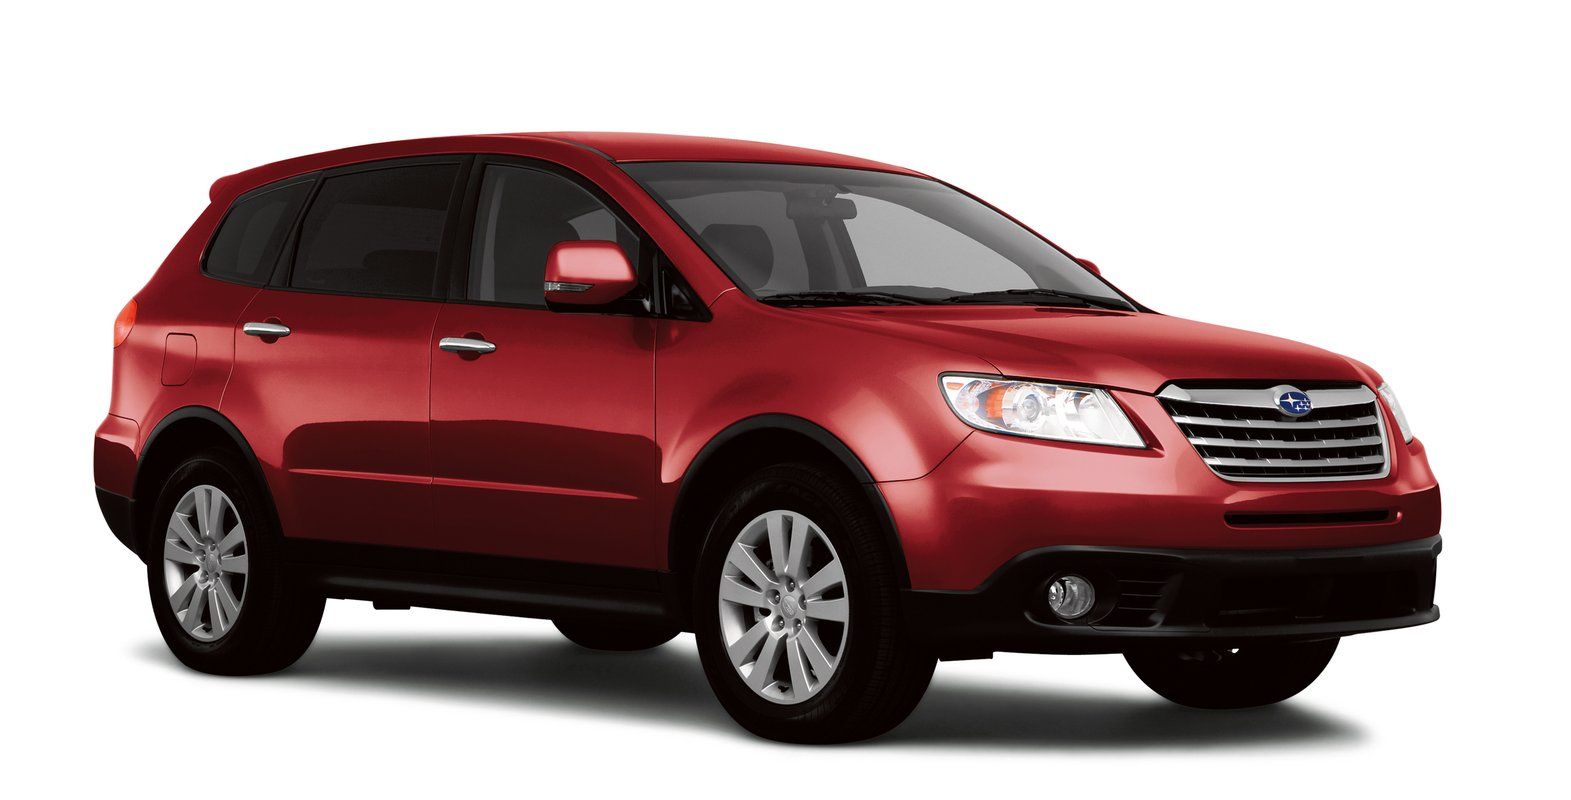 Used Cars For Sale In Denver >> 2006-2014 Subaru Tribeca Recalled For Hood Latch Problem